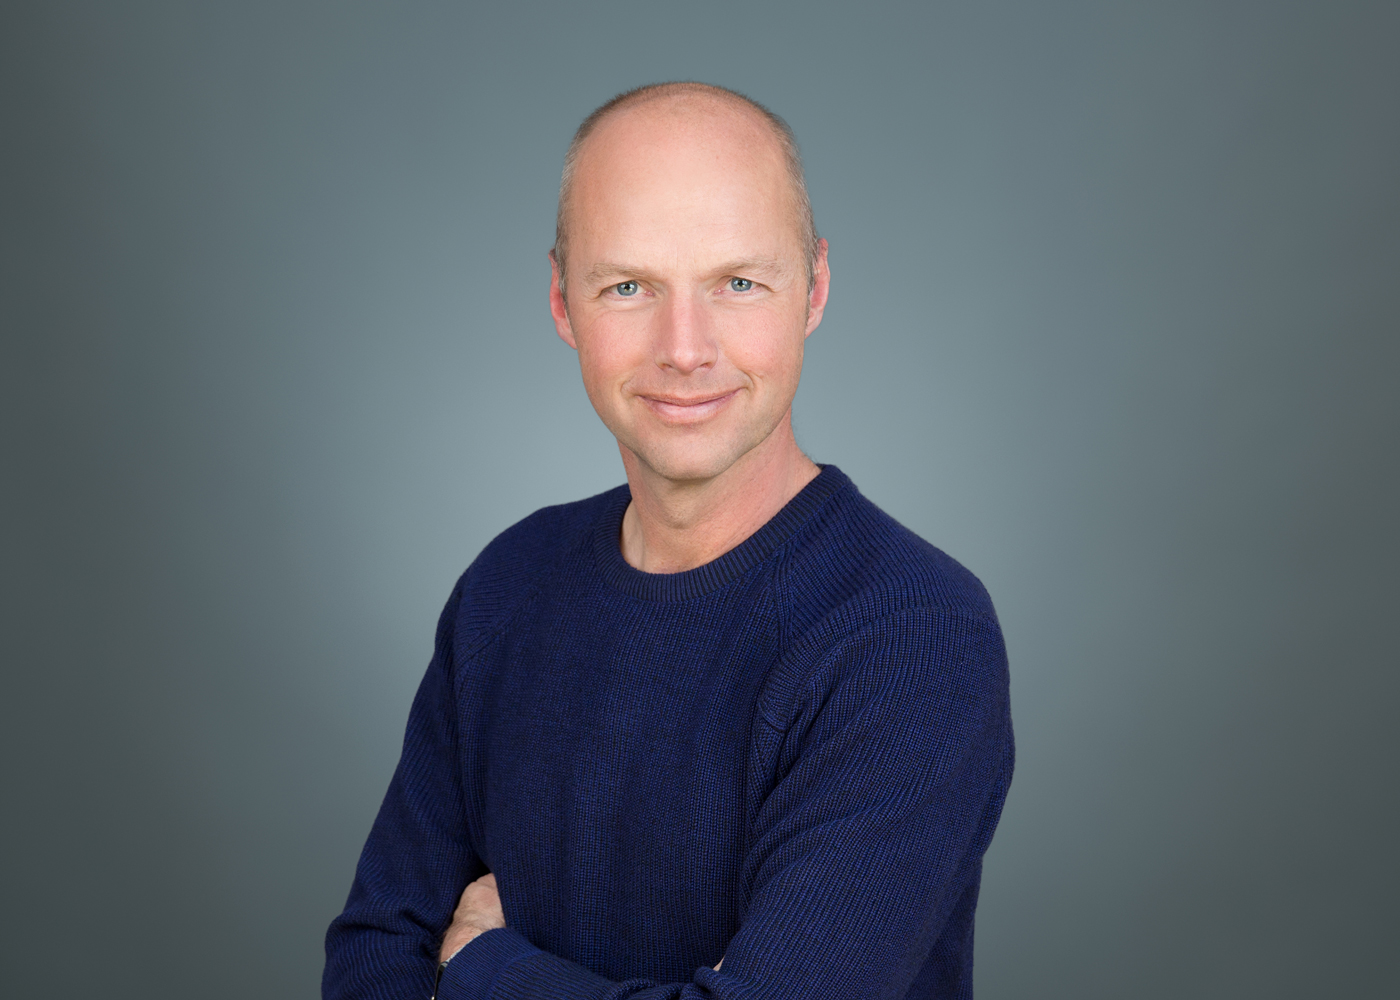 Roboticist Sebastian Thrun started, and led, Google's autonomous car project and is now building a self-driving car at his online learning startup Udacity.